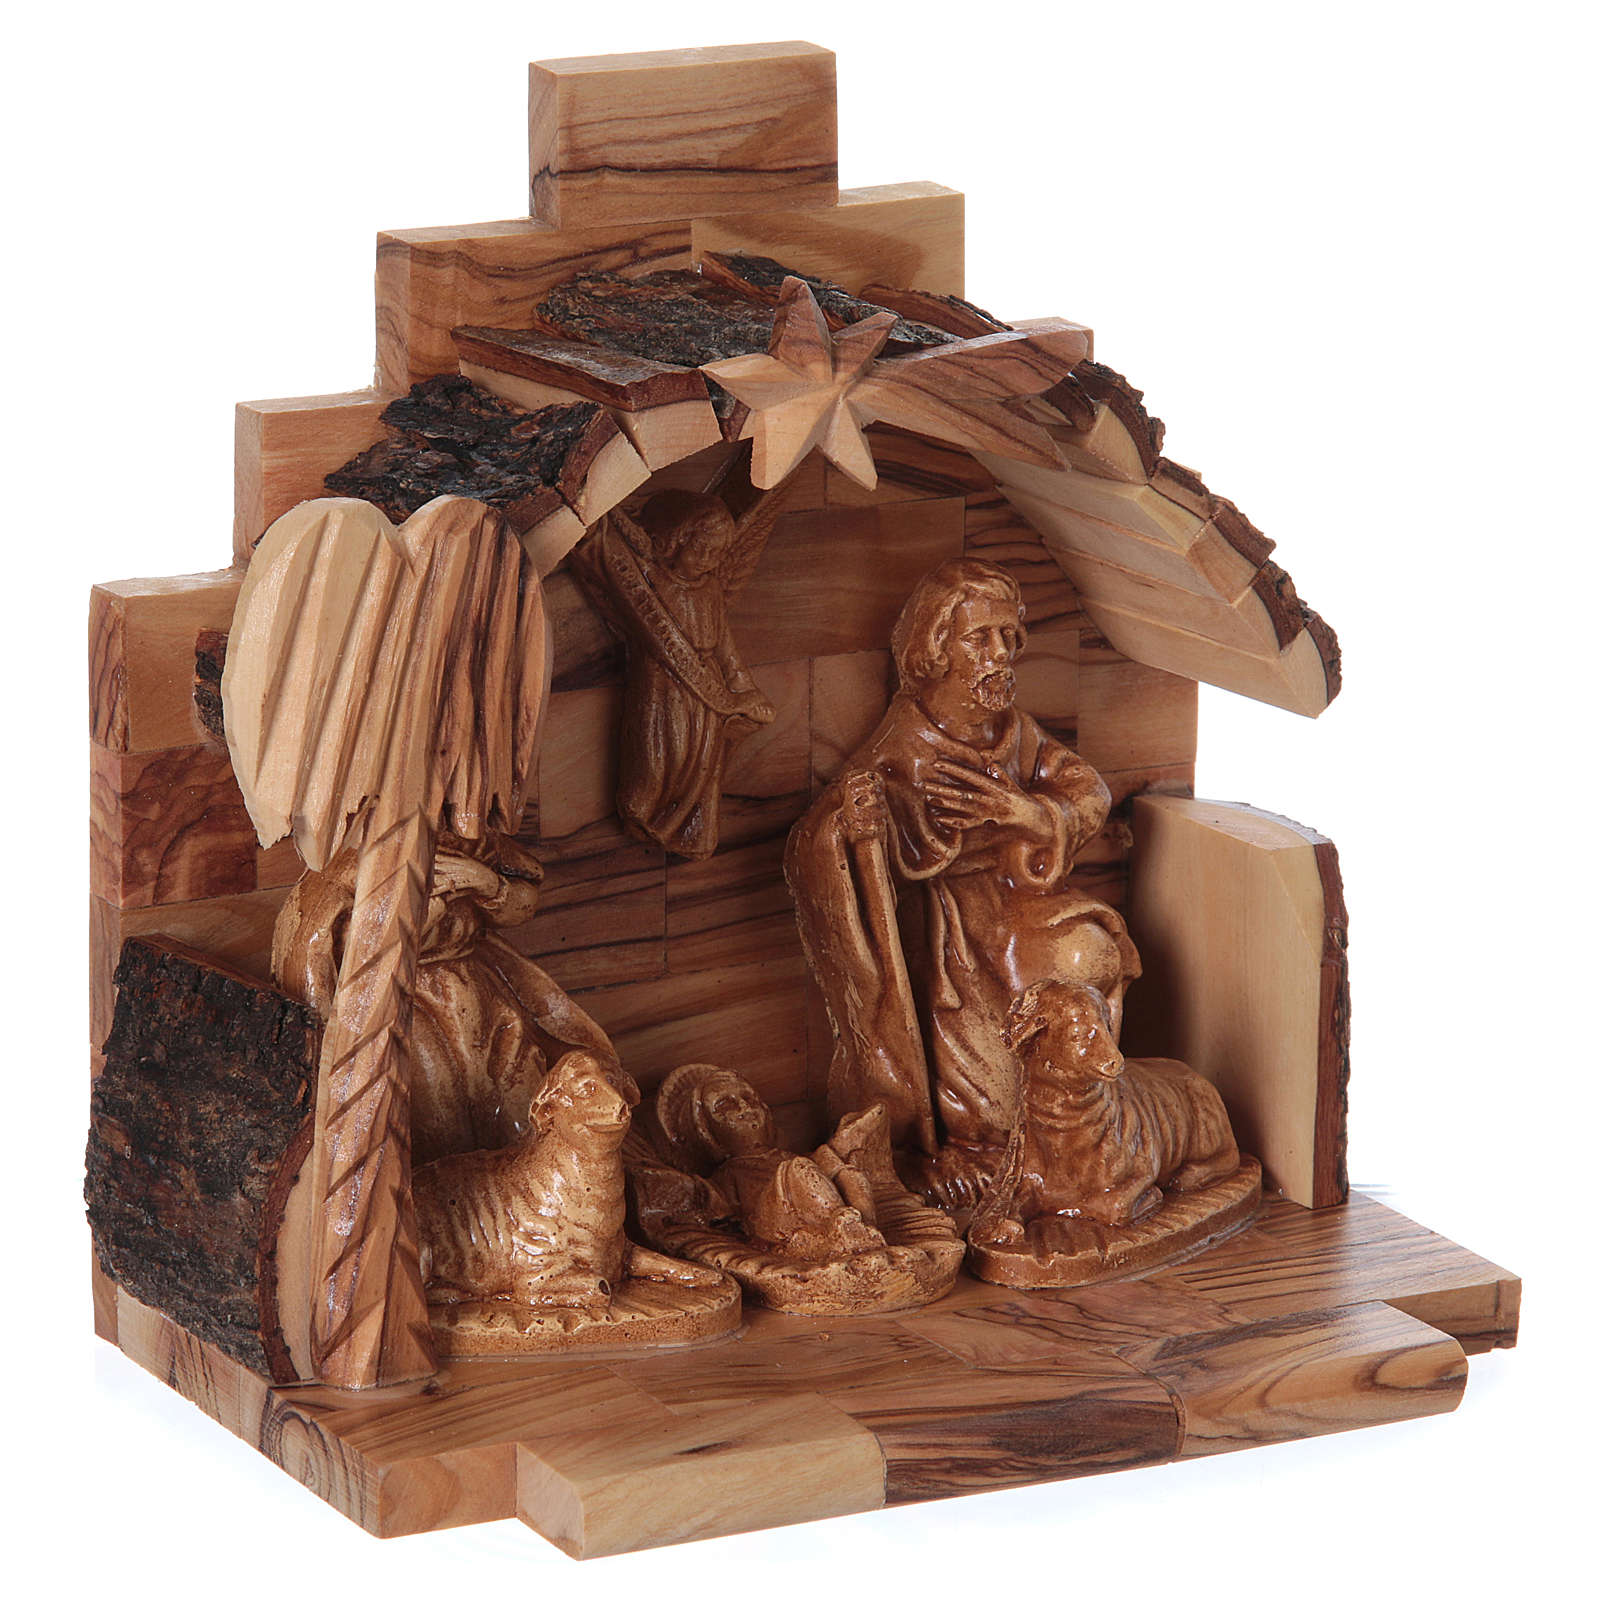 Nativity with Olive wood Barn from Bethlehem 15x15x10 cm 4